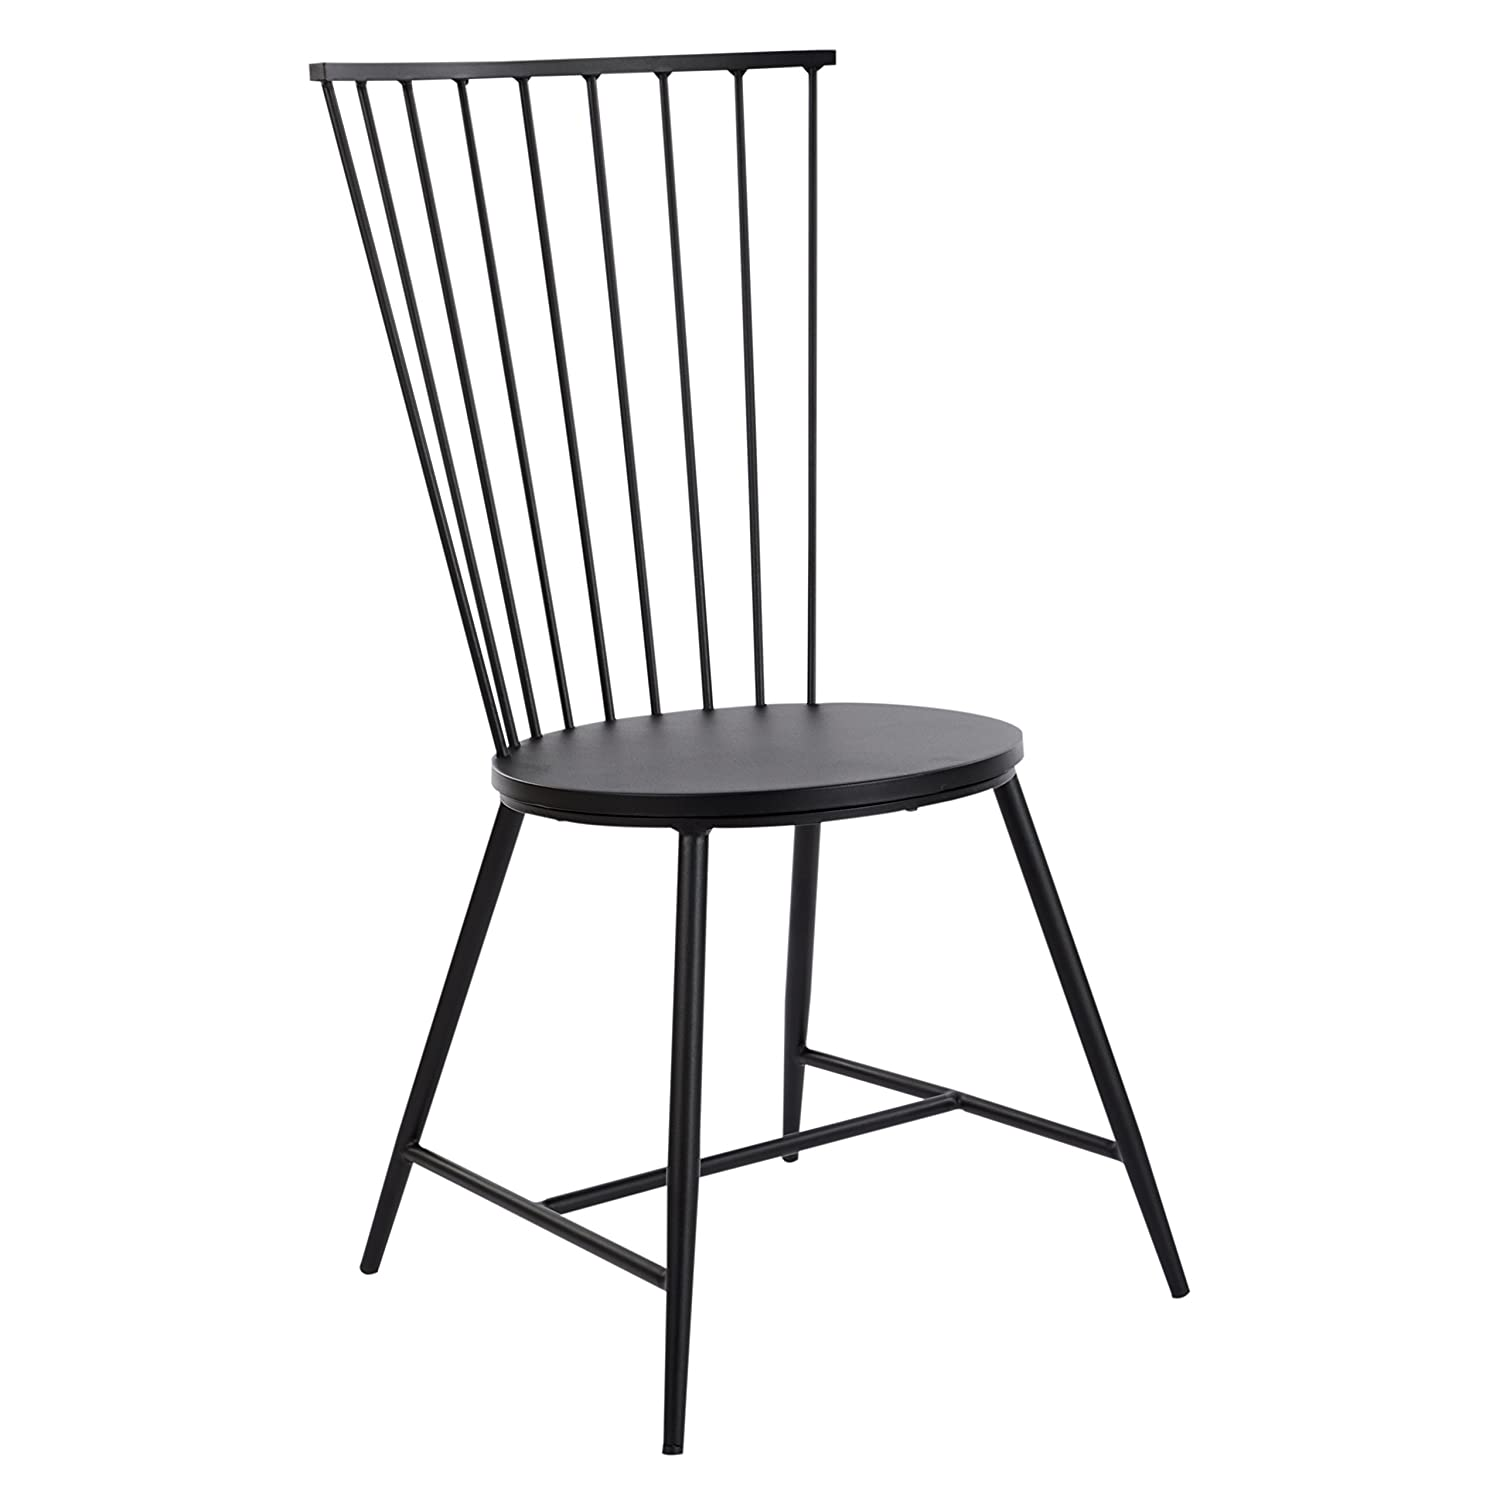 OSP Designs Bryce 26 Dining Chair, Black